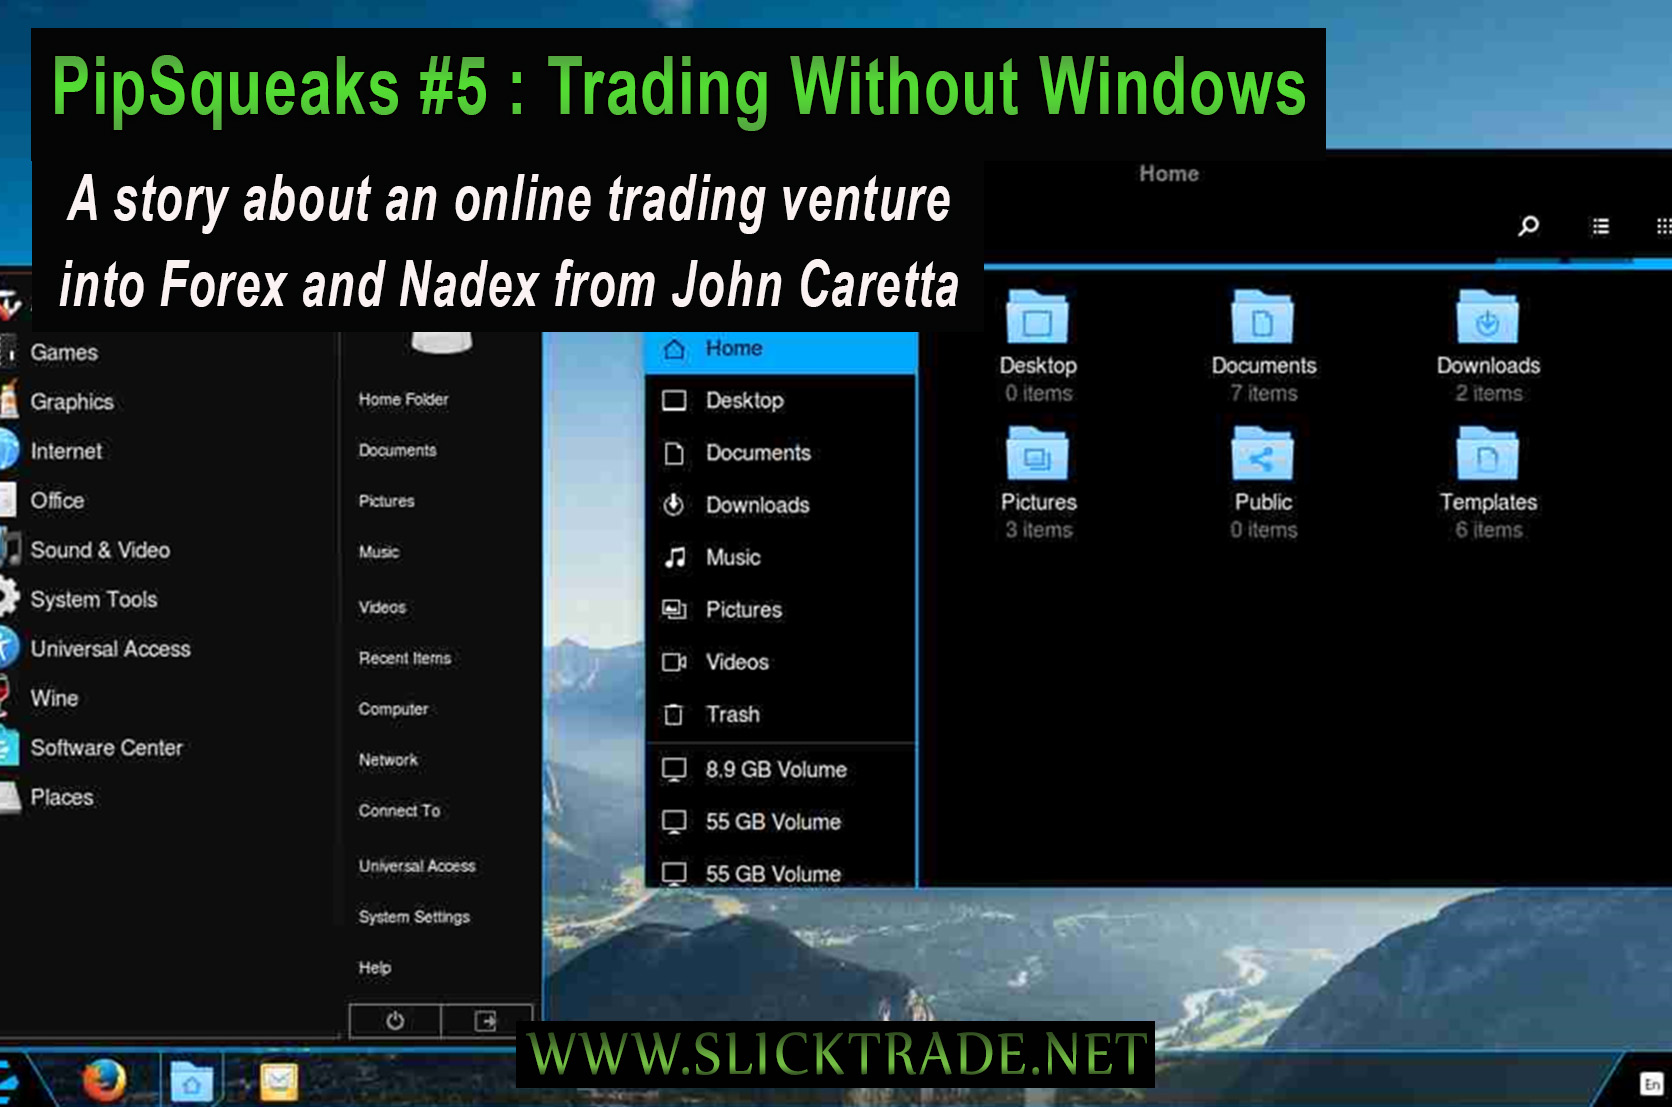 Pipsqueaks 5 Trading without Windows Slick Trade Online Trading Academy Forex Nadex